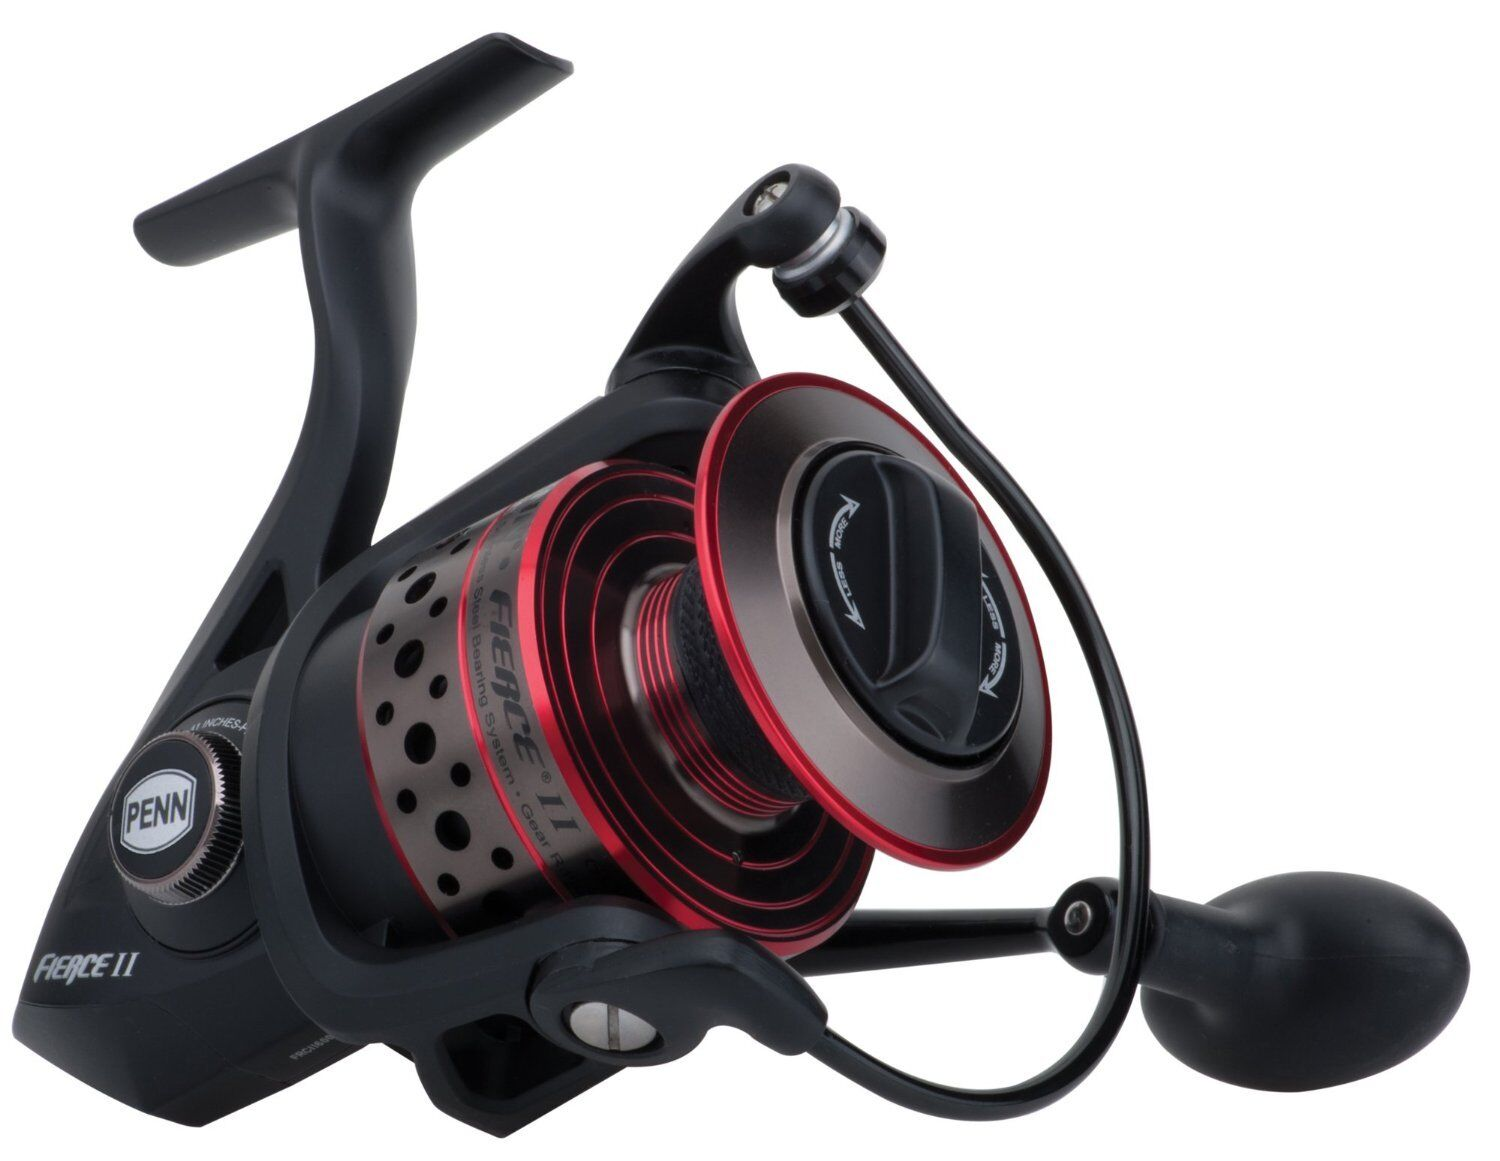 Penn Fierce II 8000 Spinning Reel